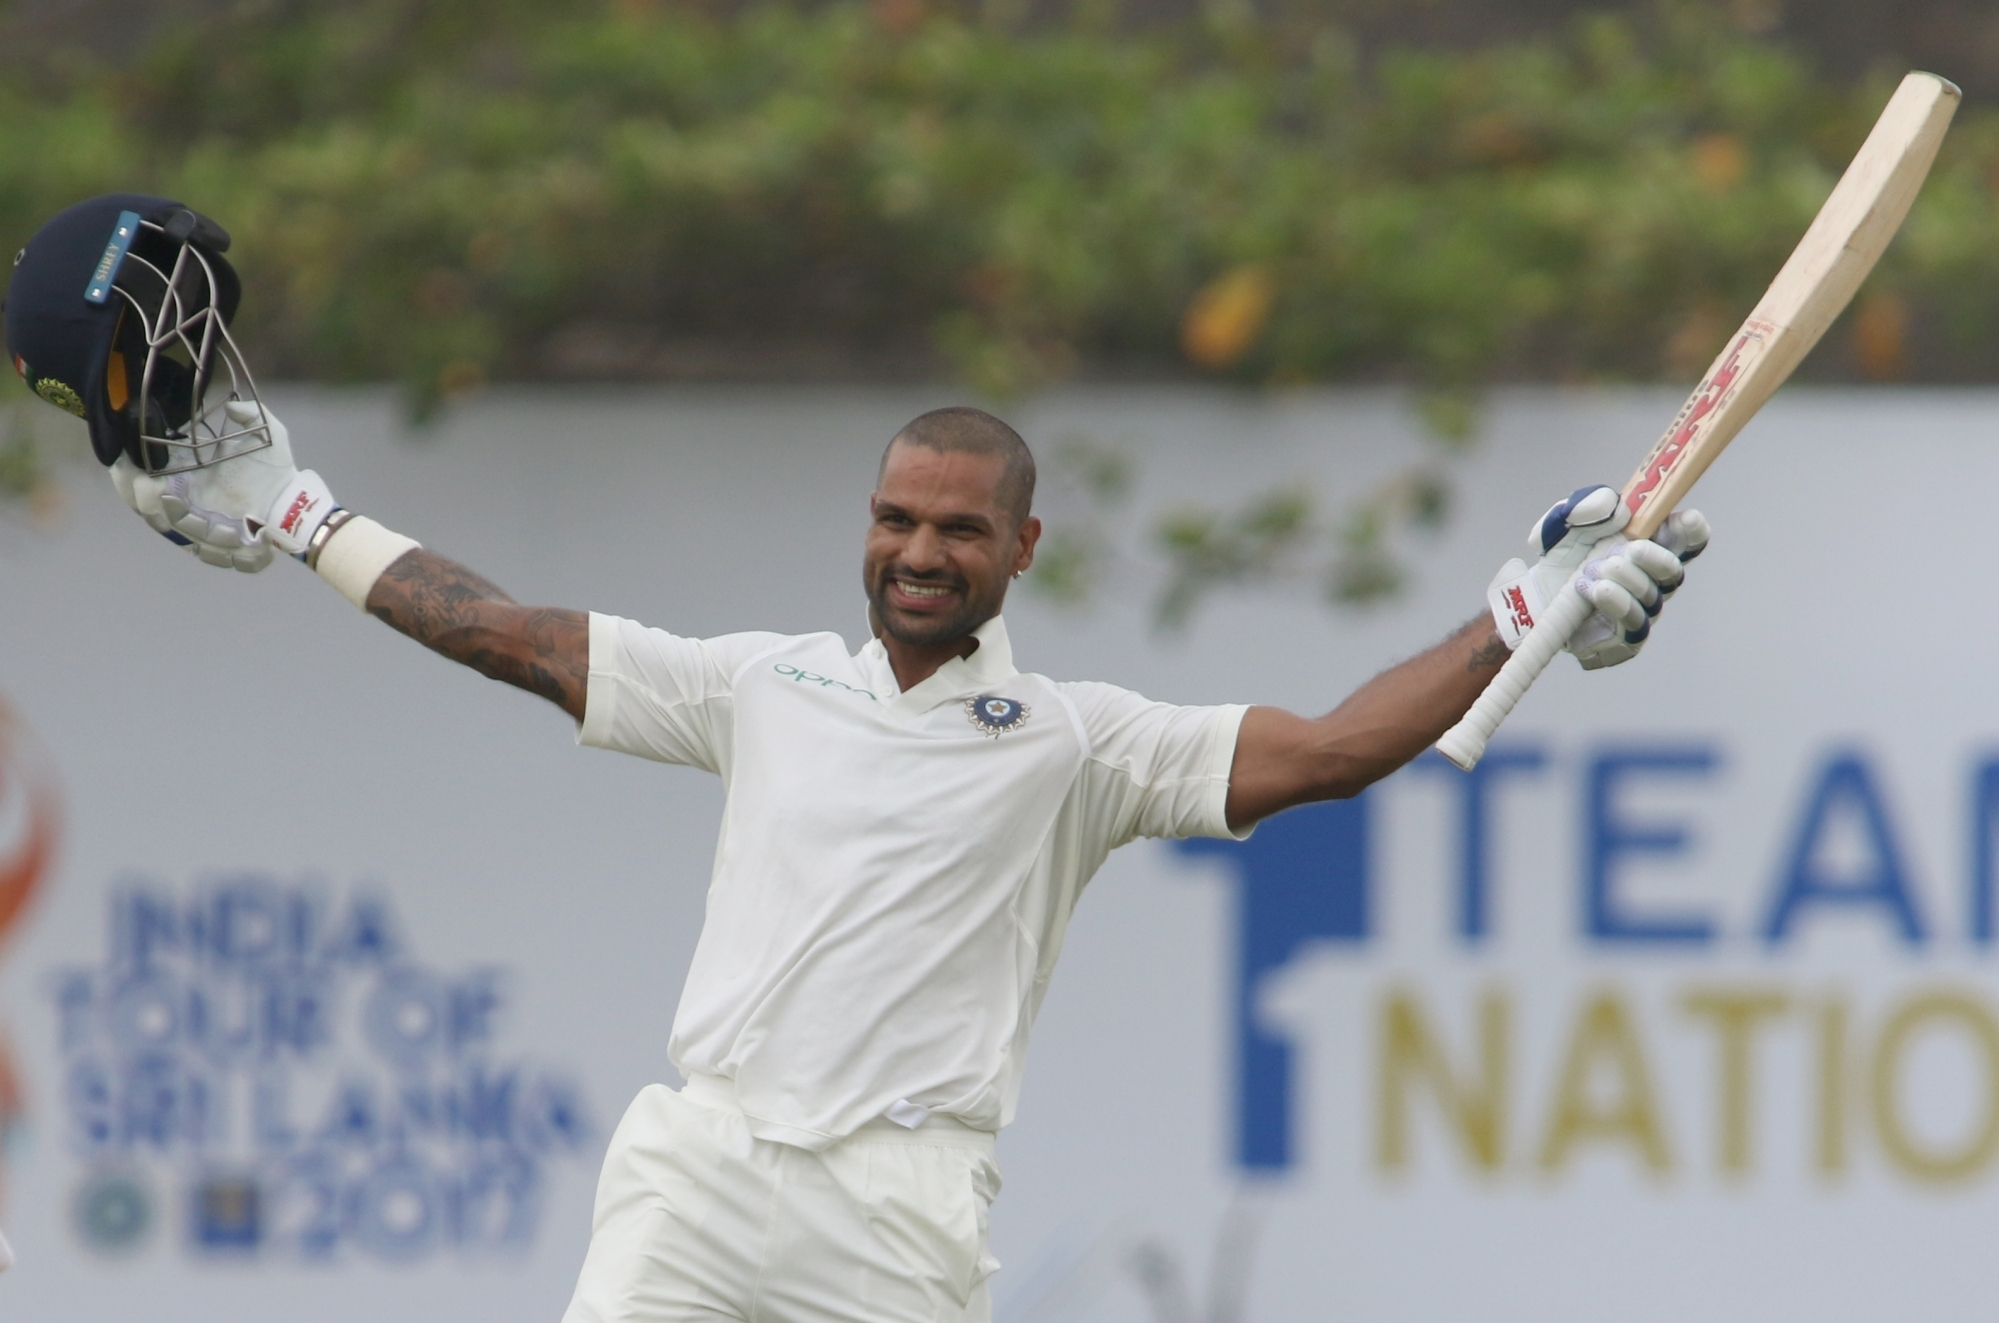 India Vs Sri Lanka 2017, 1st Test: Shikhar Dhawan pummels Sri Lanka, India heads to a big score at the end of first day